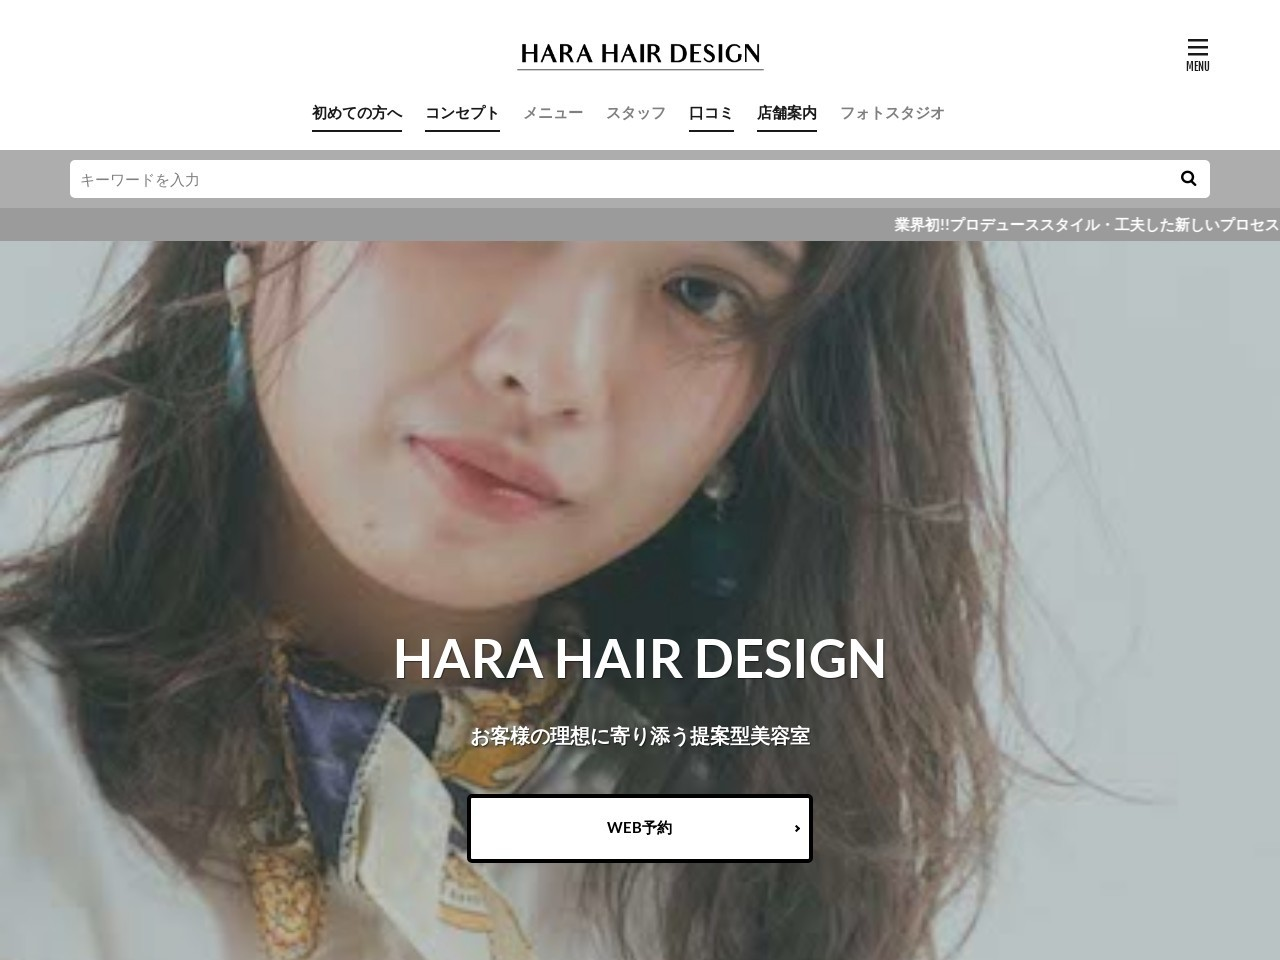 HARA HAIR DESIGN